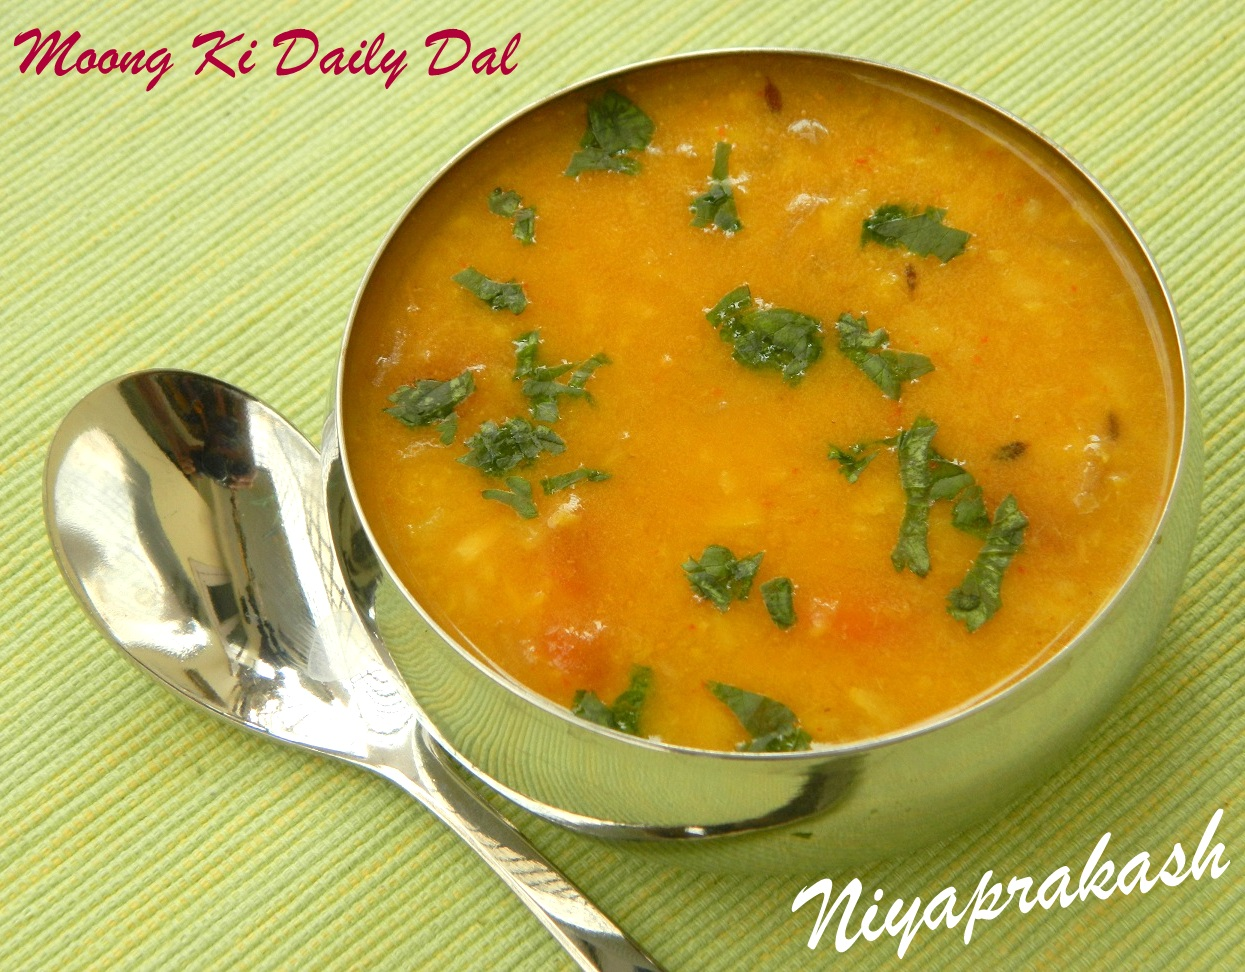 Niyas world moong ki daily dal recipe from sanjeev kapoor moong ki daily dal recipe from sanjeev kapoor forumfinder Choice Image